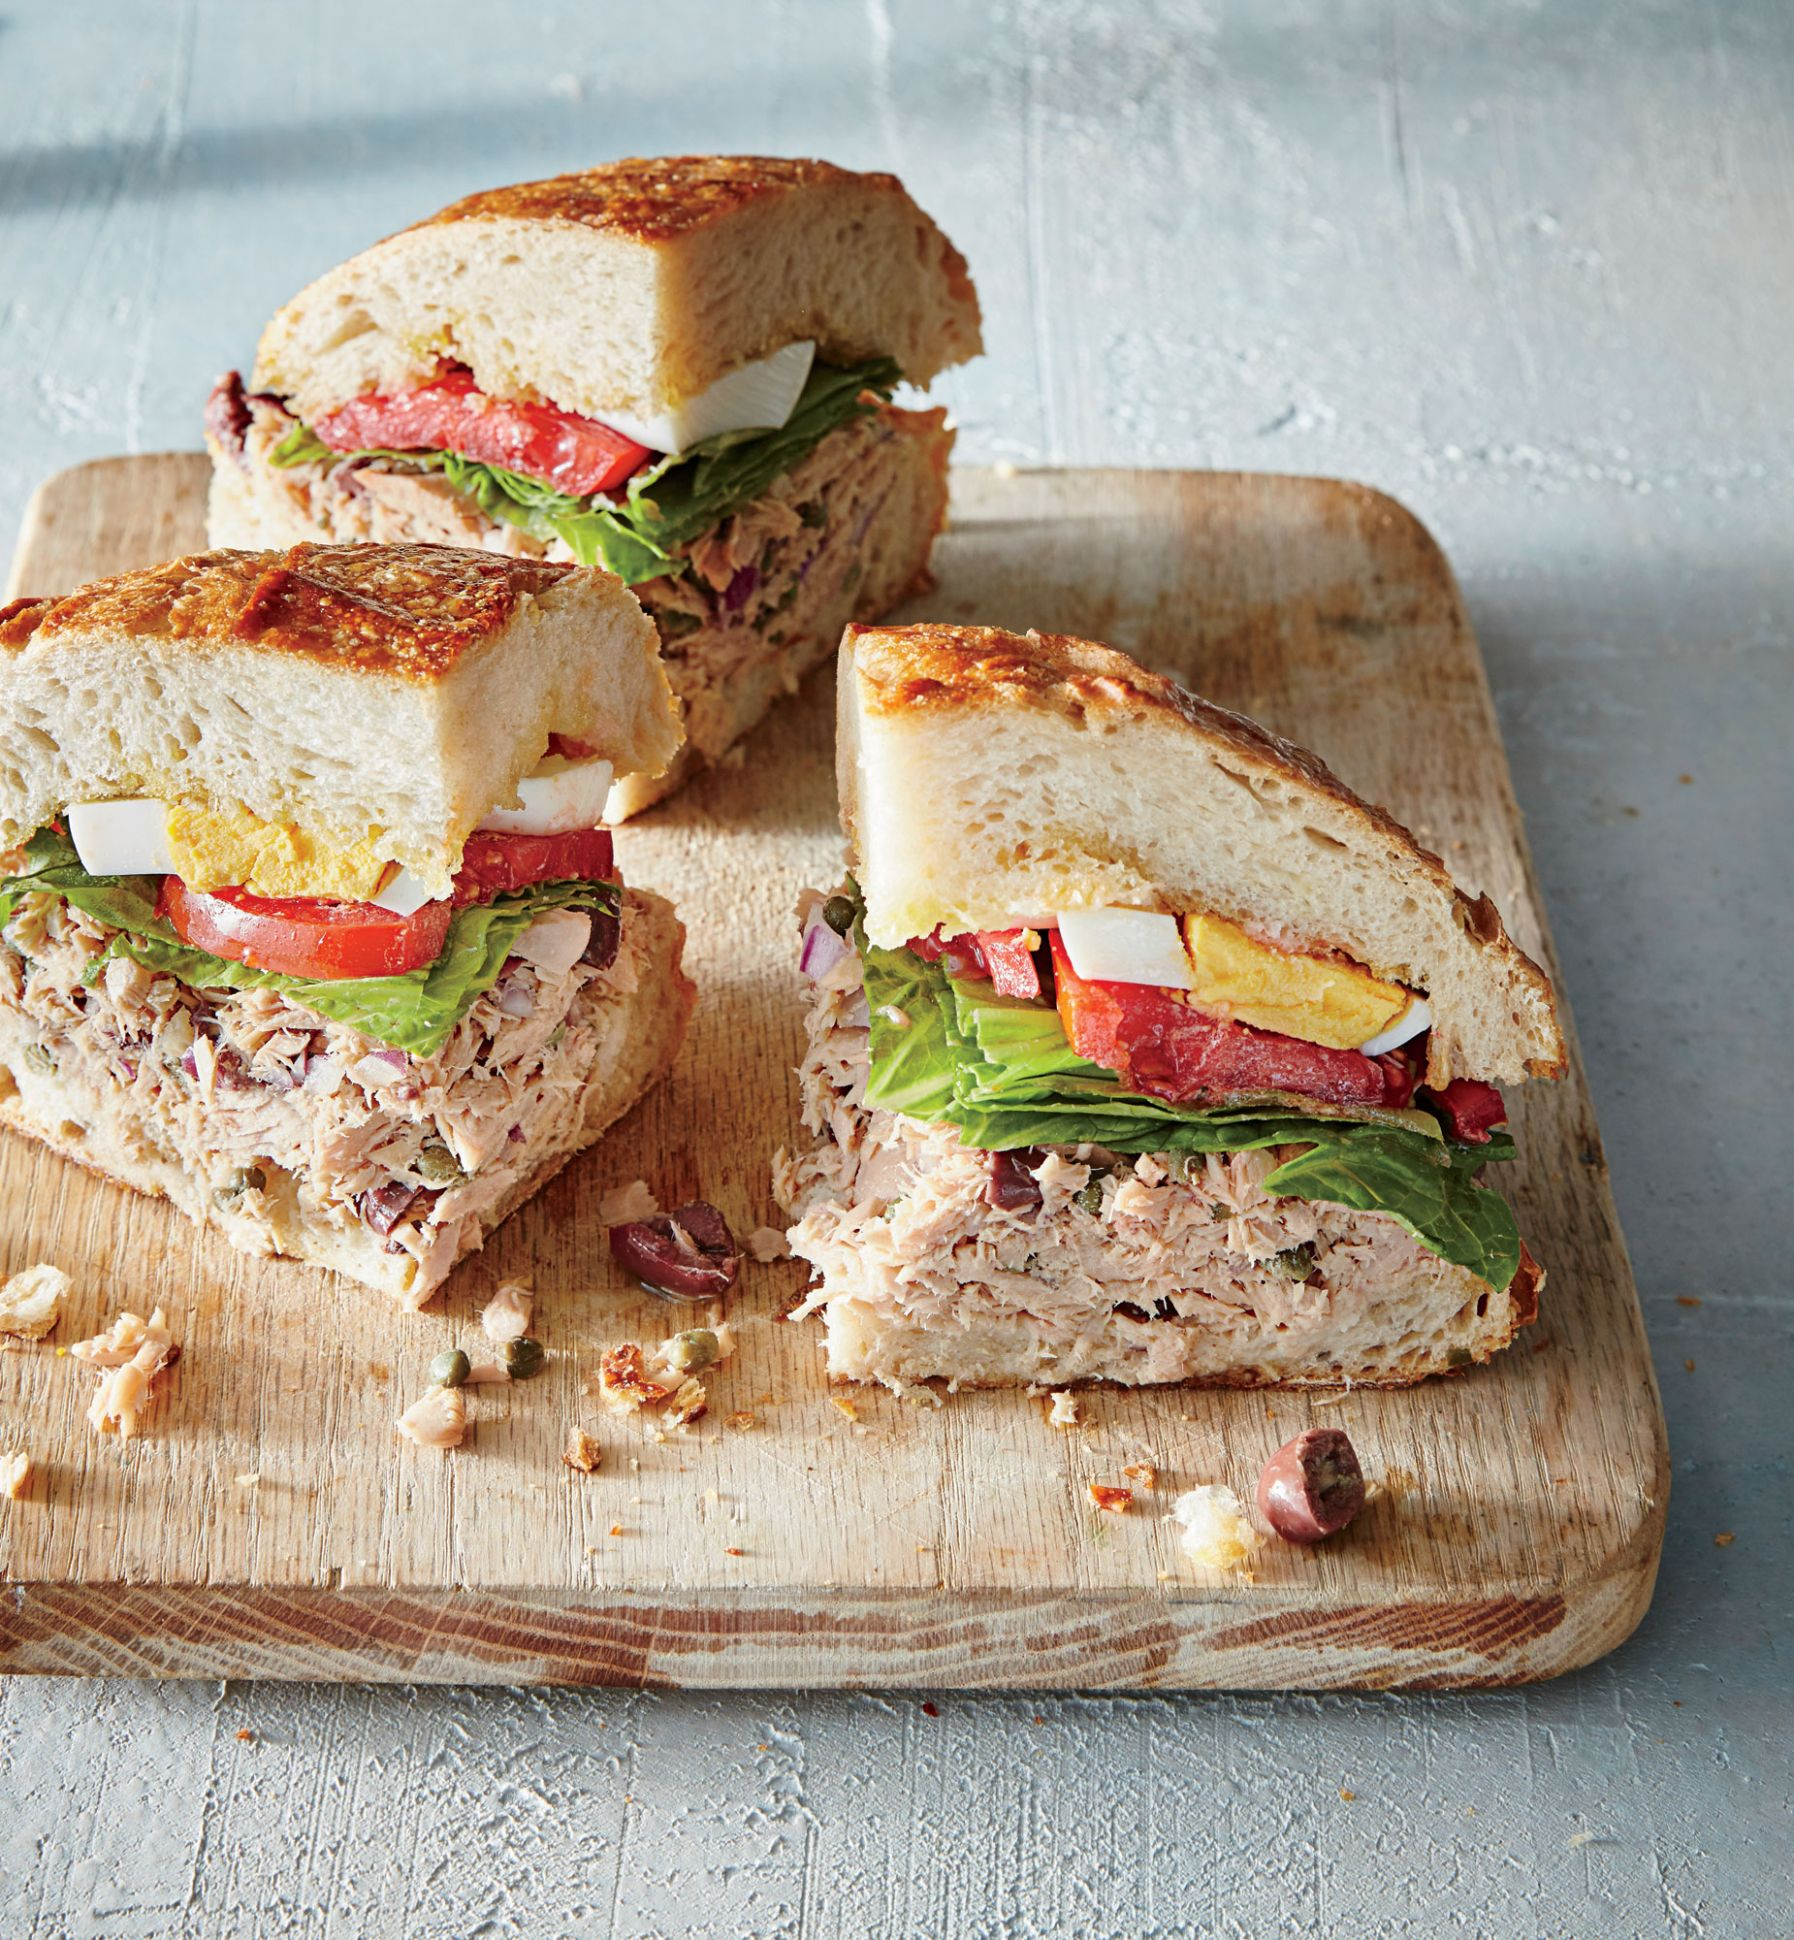 12 Healthy No Cook Lunch Ideas   Cooking Light - Sandwich Recipes To Take To Work